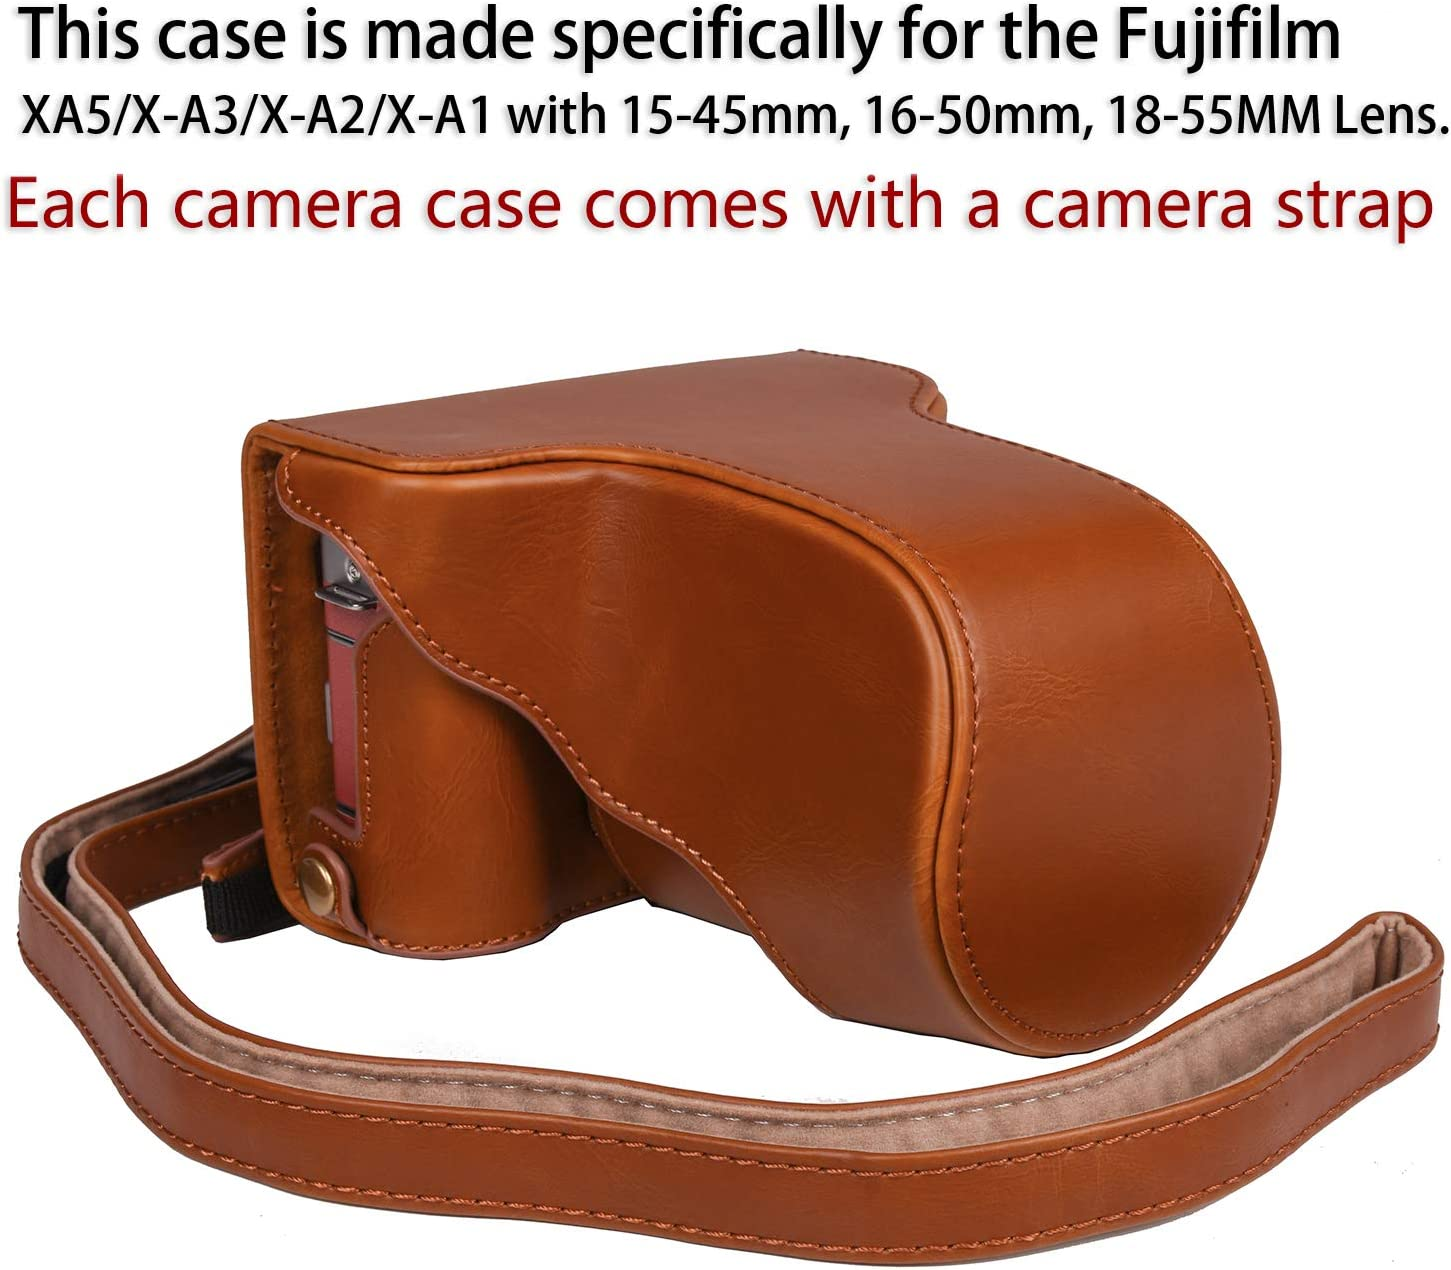 16-50mm // 18-55mm // XF 35mm Lens Color : Brown GuiPing Full Body Camera PU Leather Case Bag with Strap for FUJIFILM X-A3 // X-A2// X-M1 // X-A10 Durable